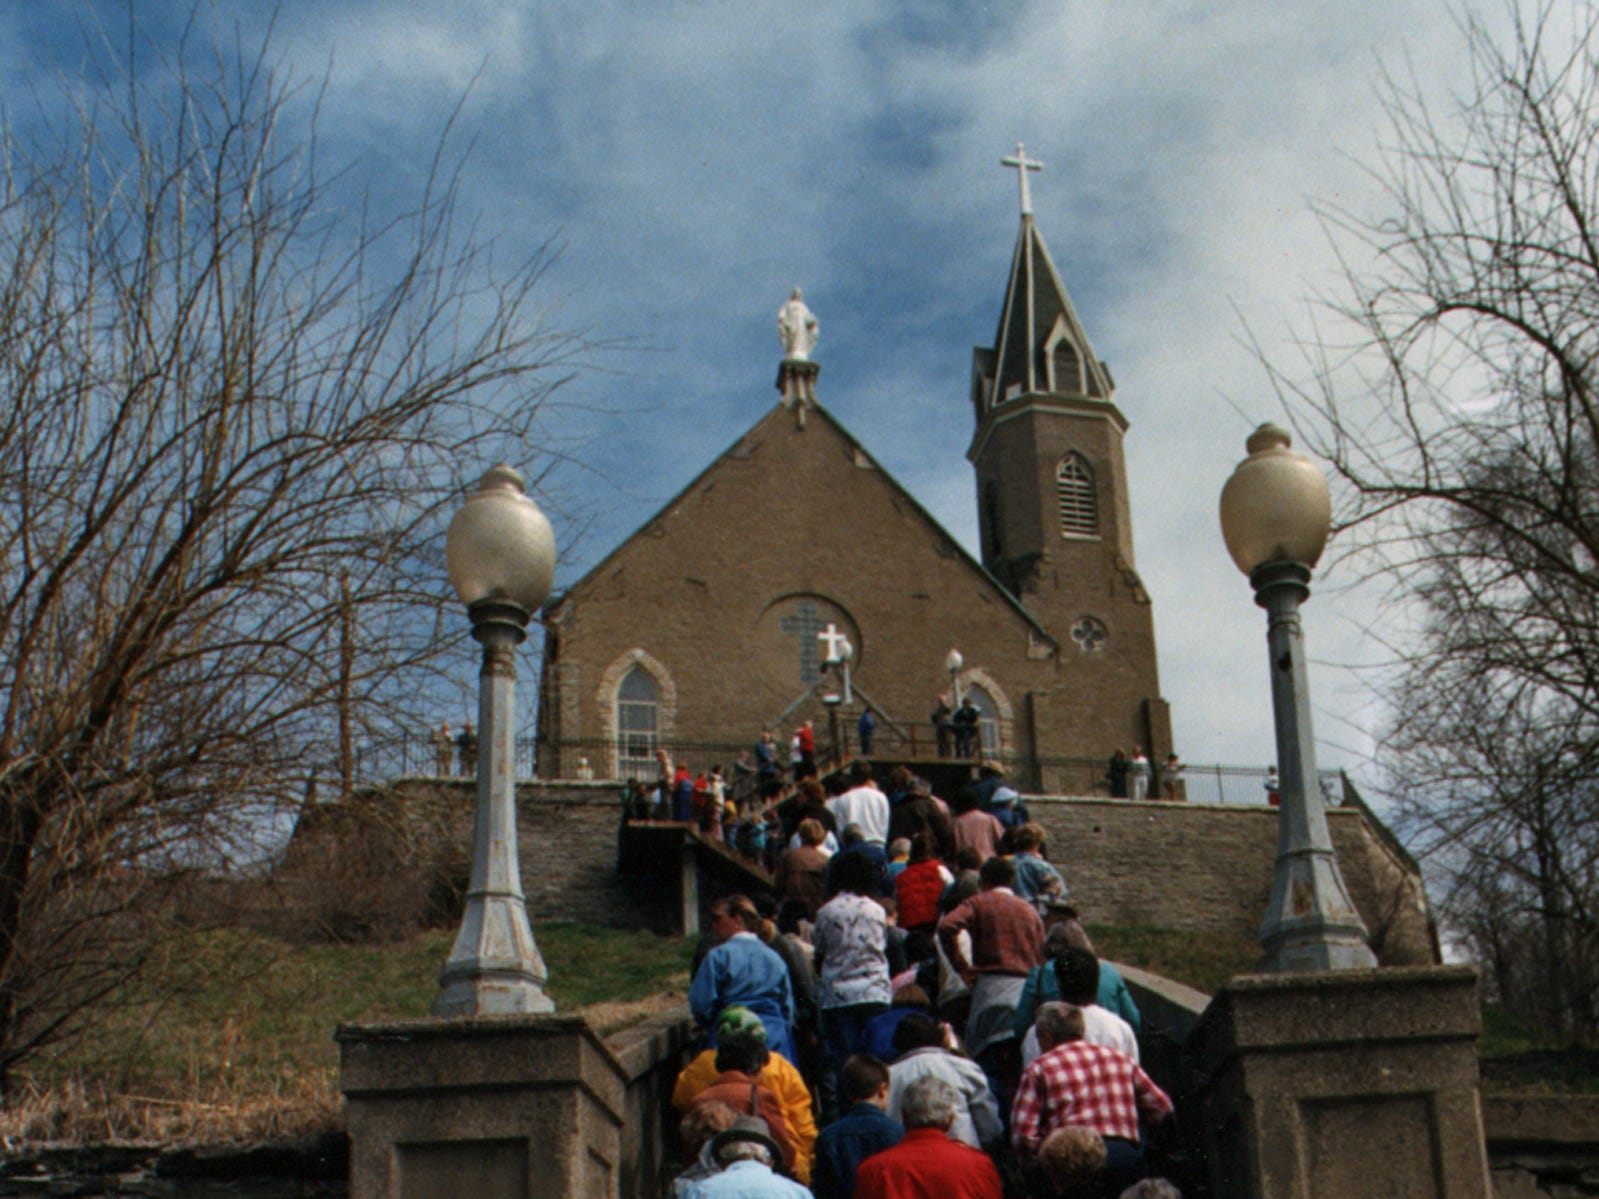 MARCH 1989: A Good Friday throng gathers on the steps of the Immaculata in Mount Adams as they prepare to continue their journey up the steps praying the rosary in the traditional Good Friday worship spot.